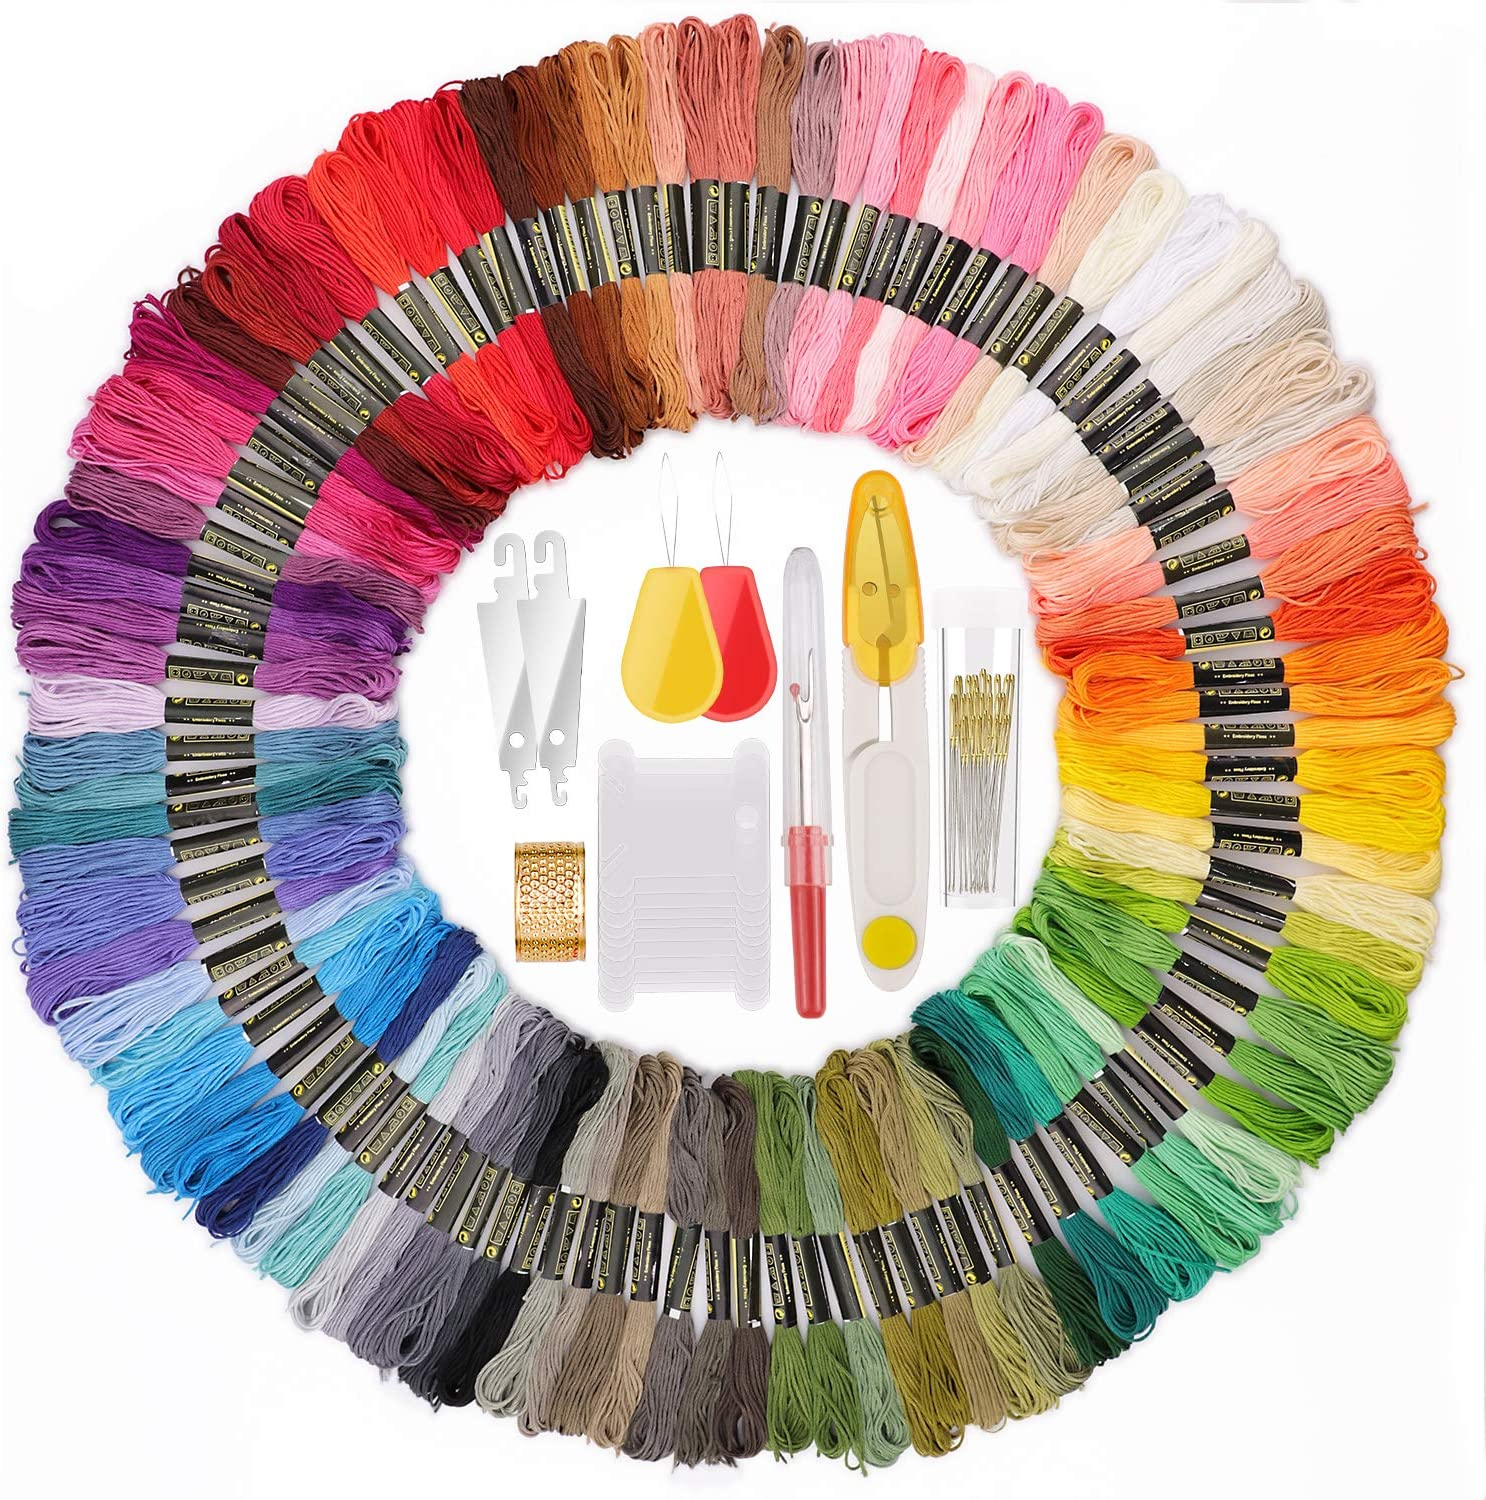 Crafts Floss for Friendship Bracelets with a Series of Needlework Tools 100 Skeins Rainbow Color Embroidery Floss Cross Stitch Threads